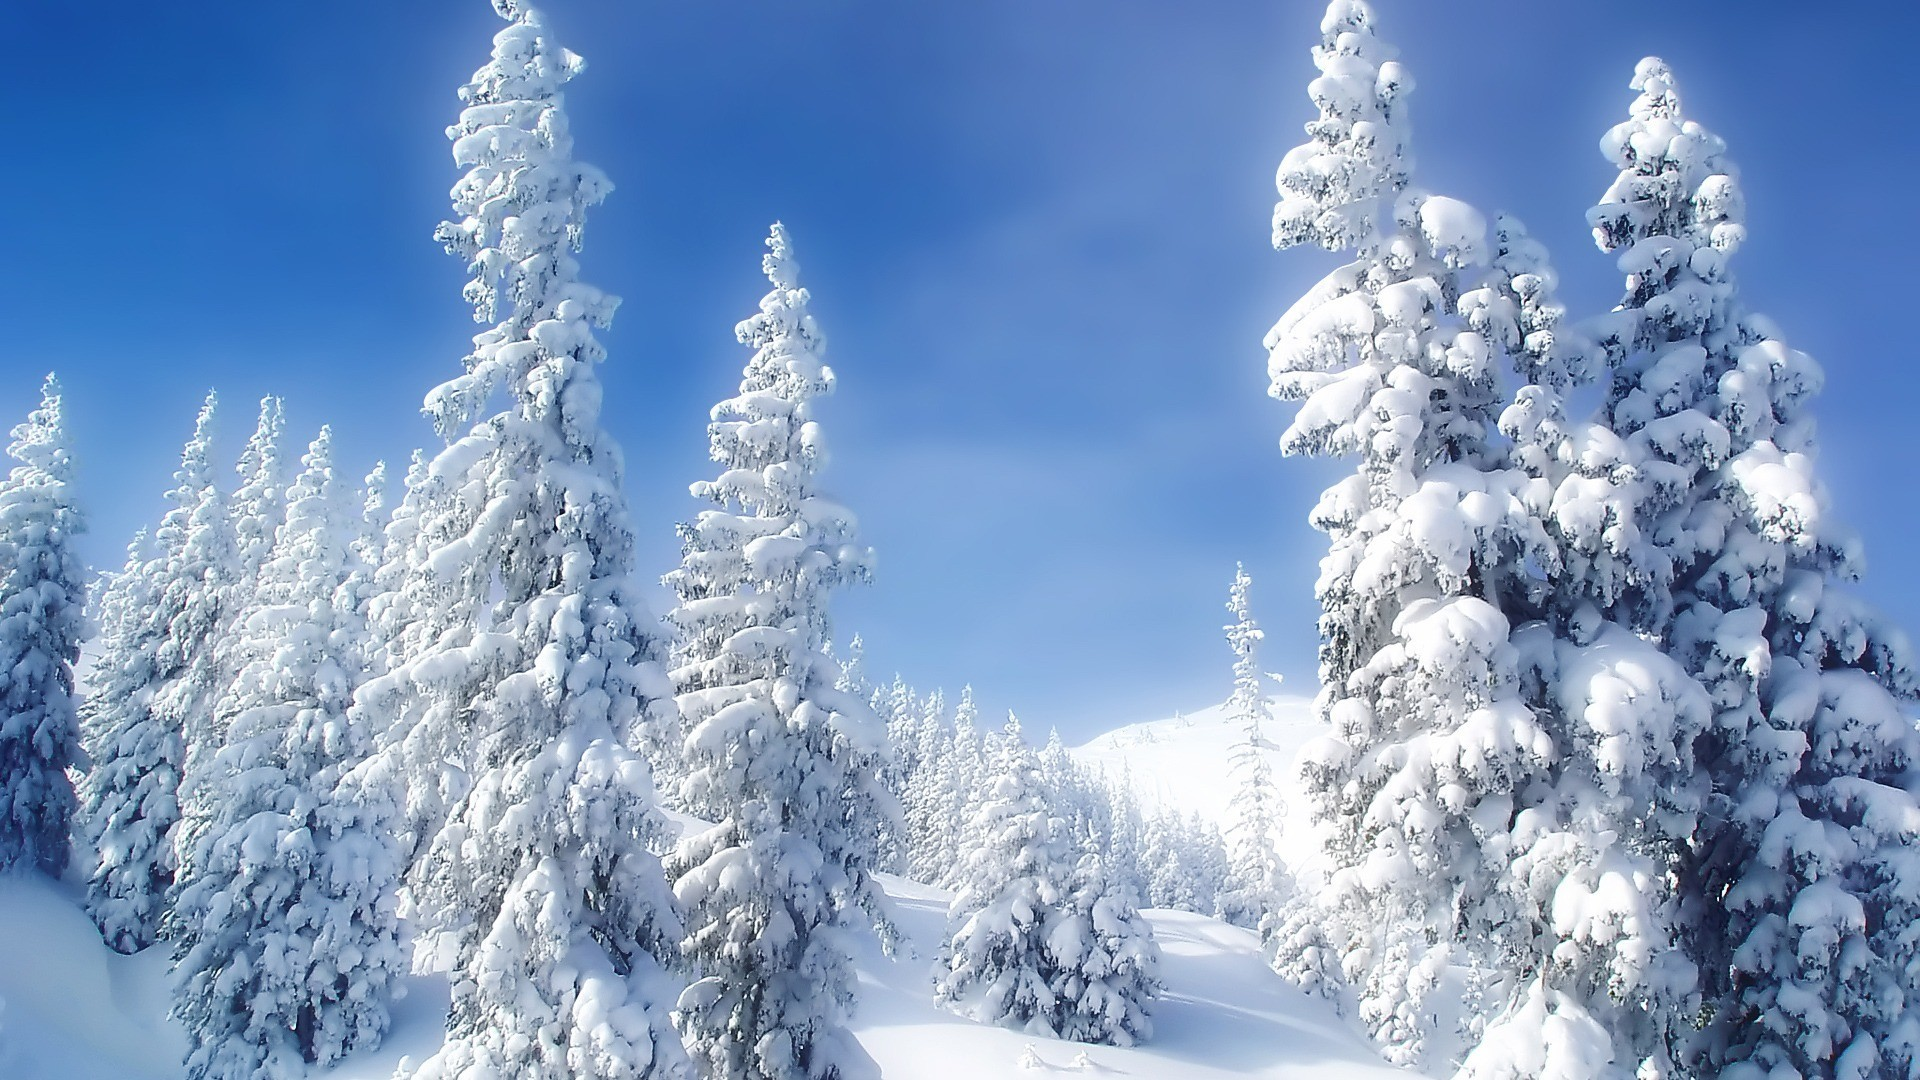 1920x1080  Winter Wonderland Desktop Wallpapers Source · Winter Wonderland  Desktop Background